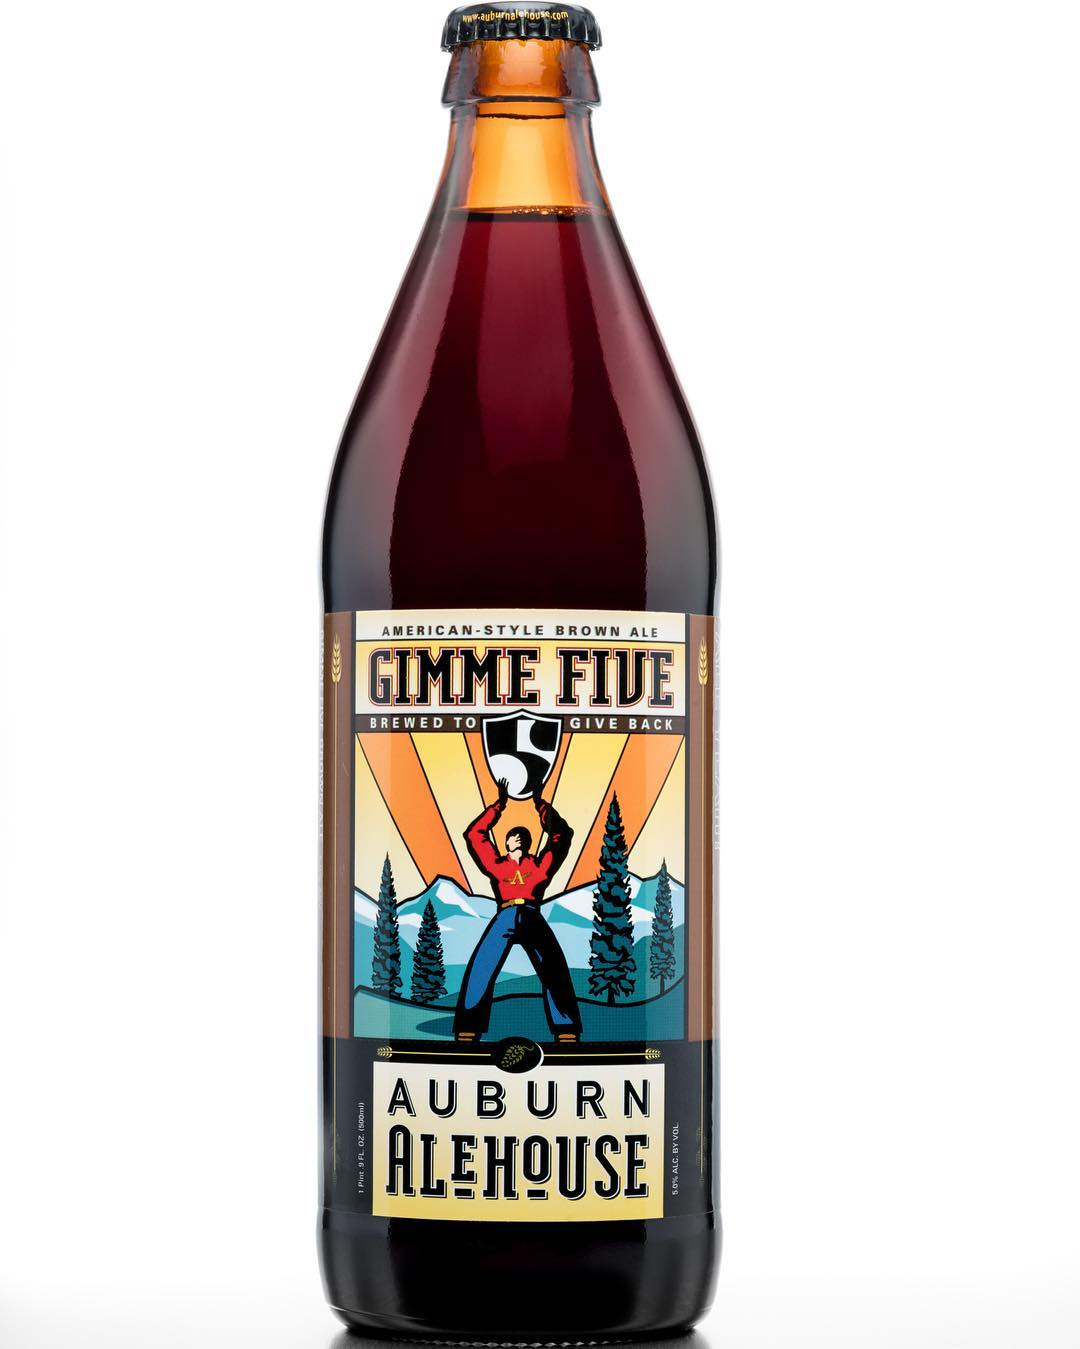 Hey Tahoe! July just got hotter. Celebrate the release of High Fives x @auburn_alehouse beer bottles today from 4 - 7pm behind CA89! #gimmefive #brewedtogiveback